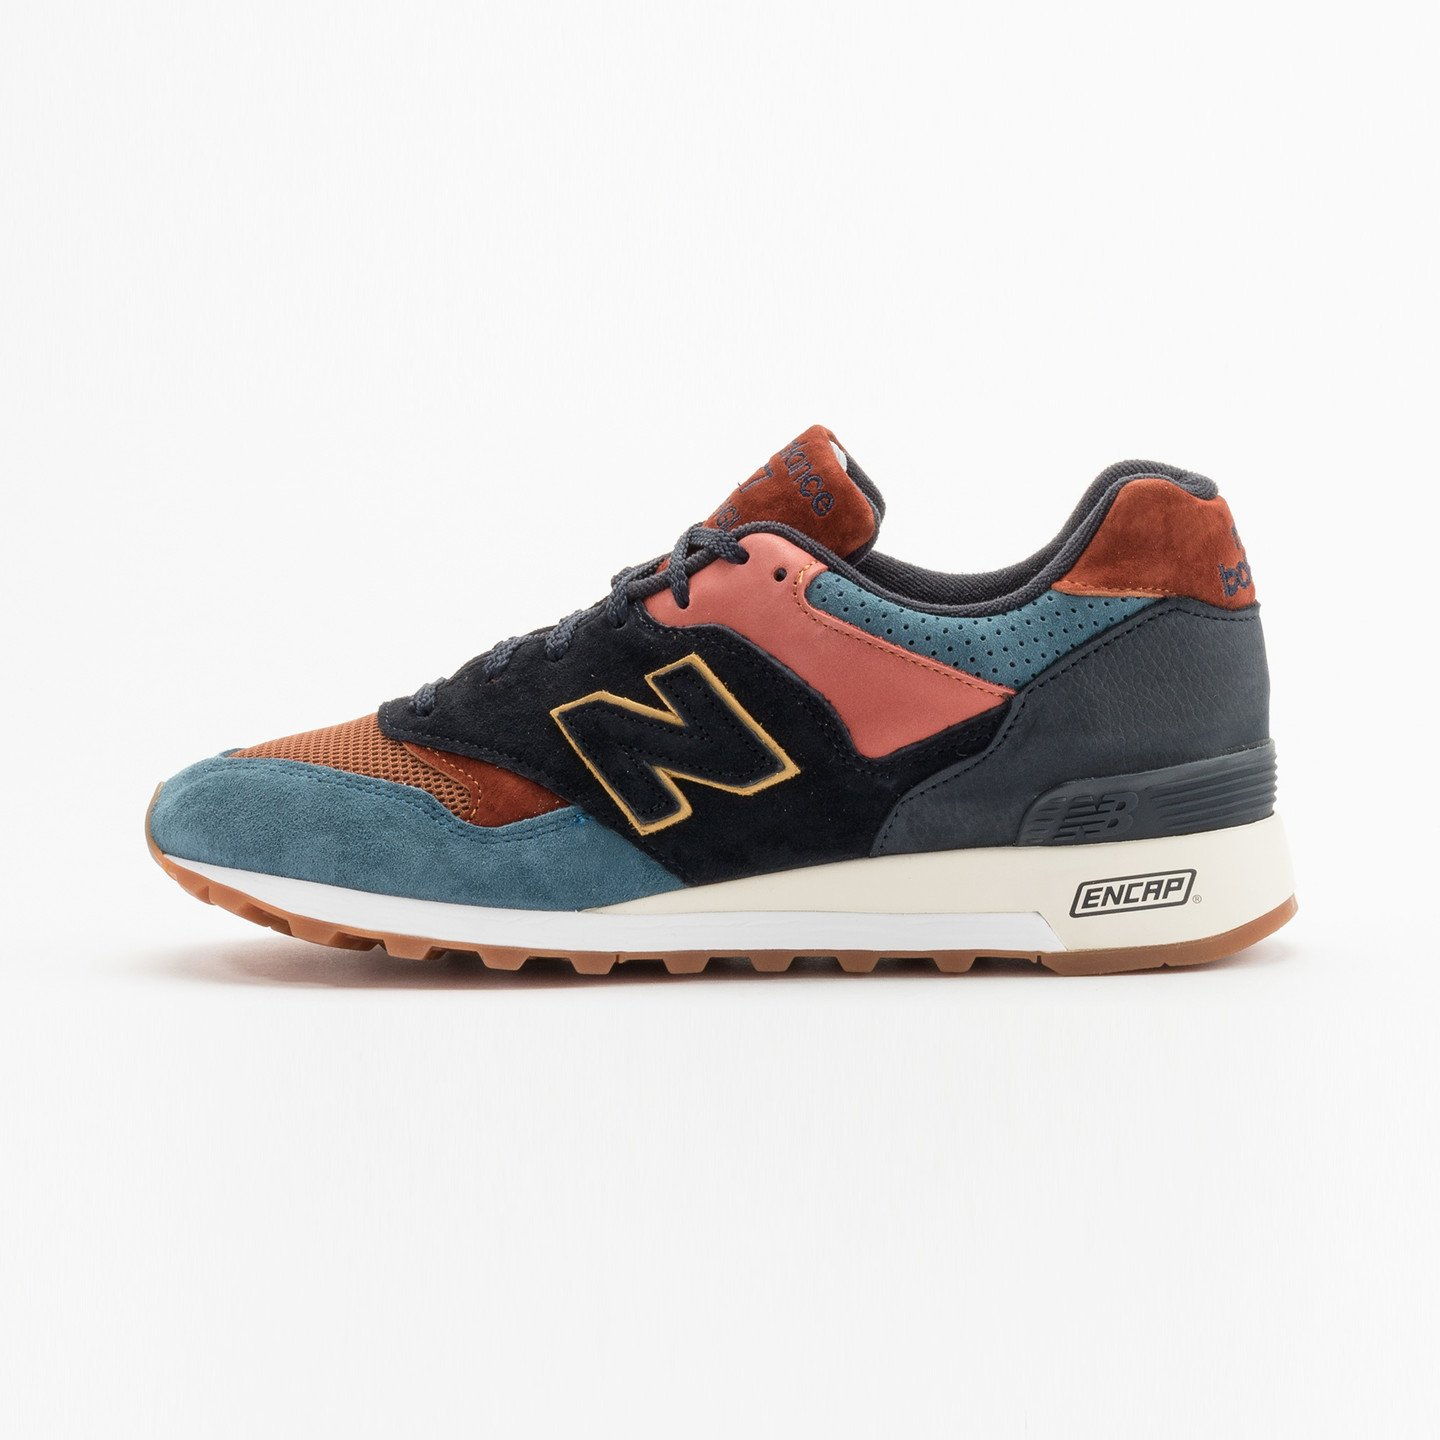 New Balance M577 YP Made in UK 'Yard Pack' Multicolor M577YP-46.5